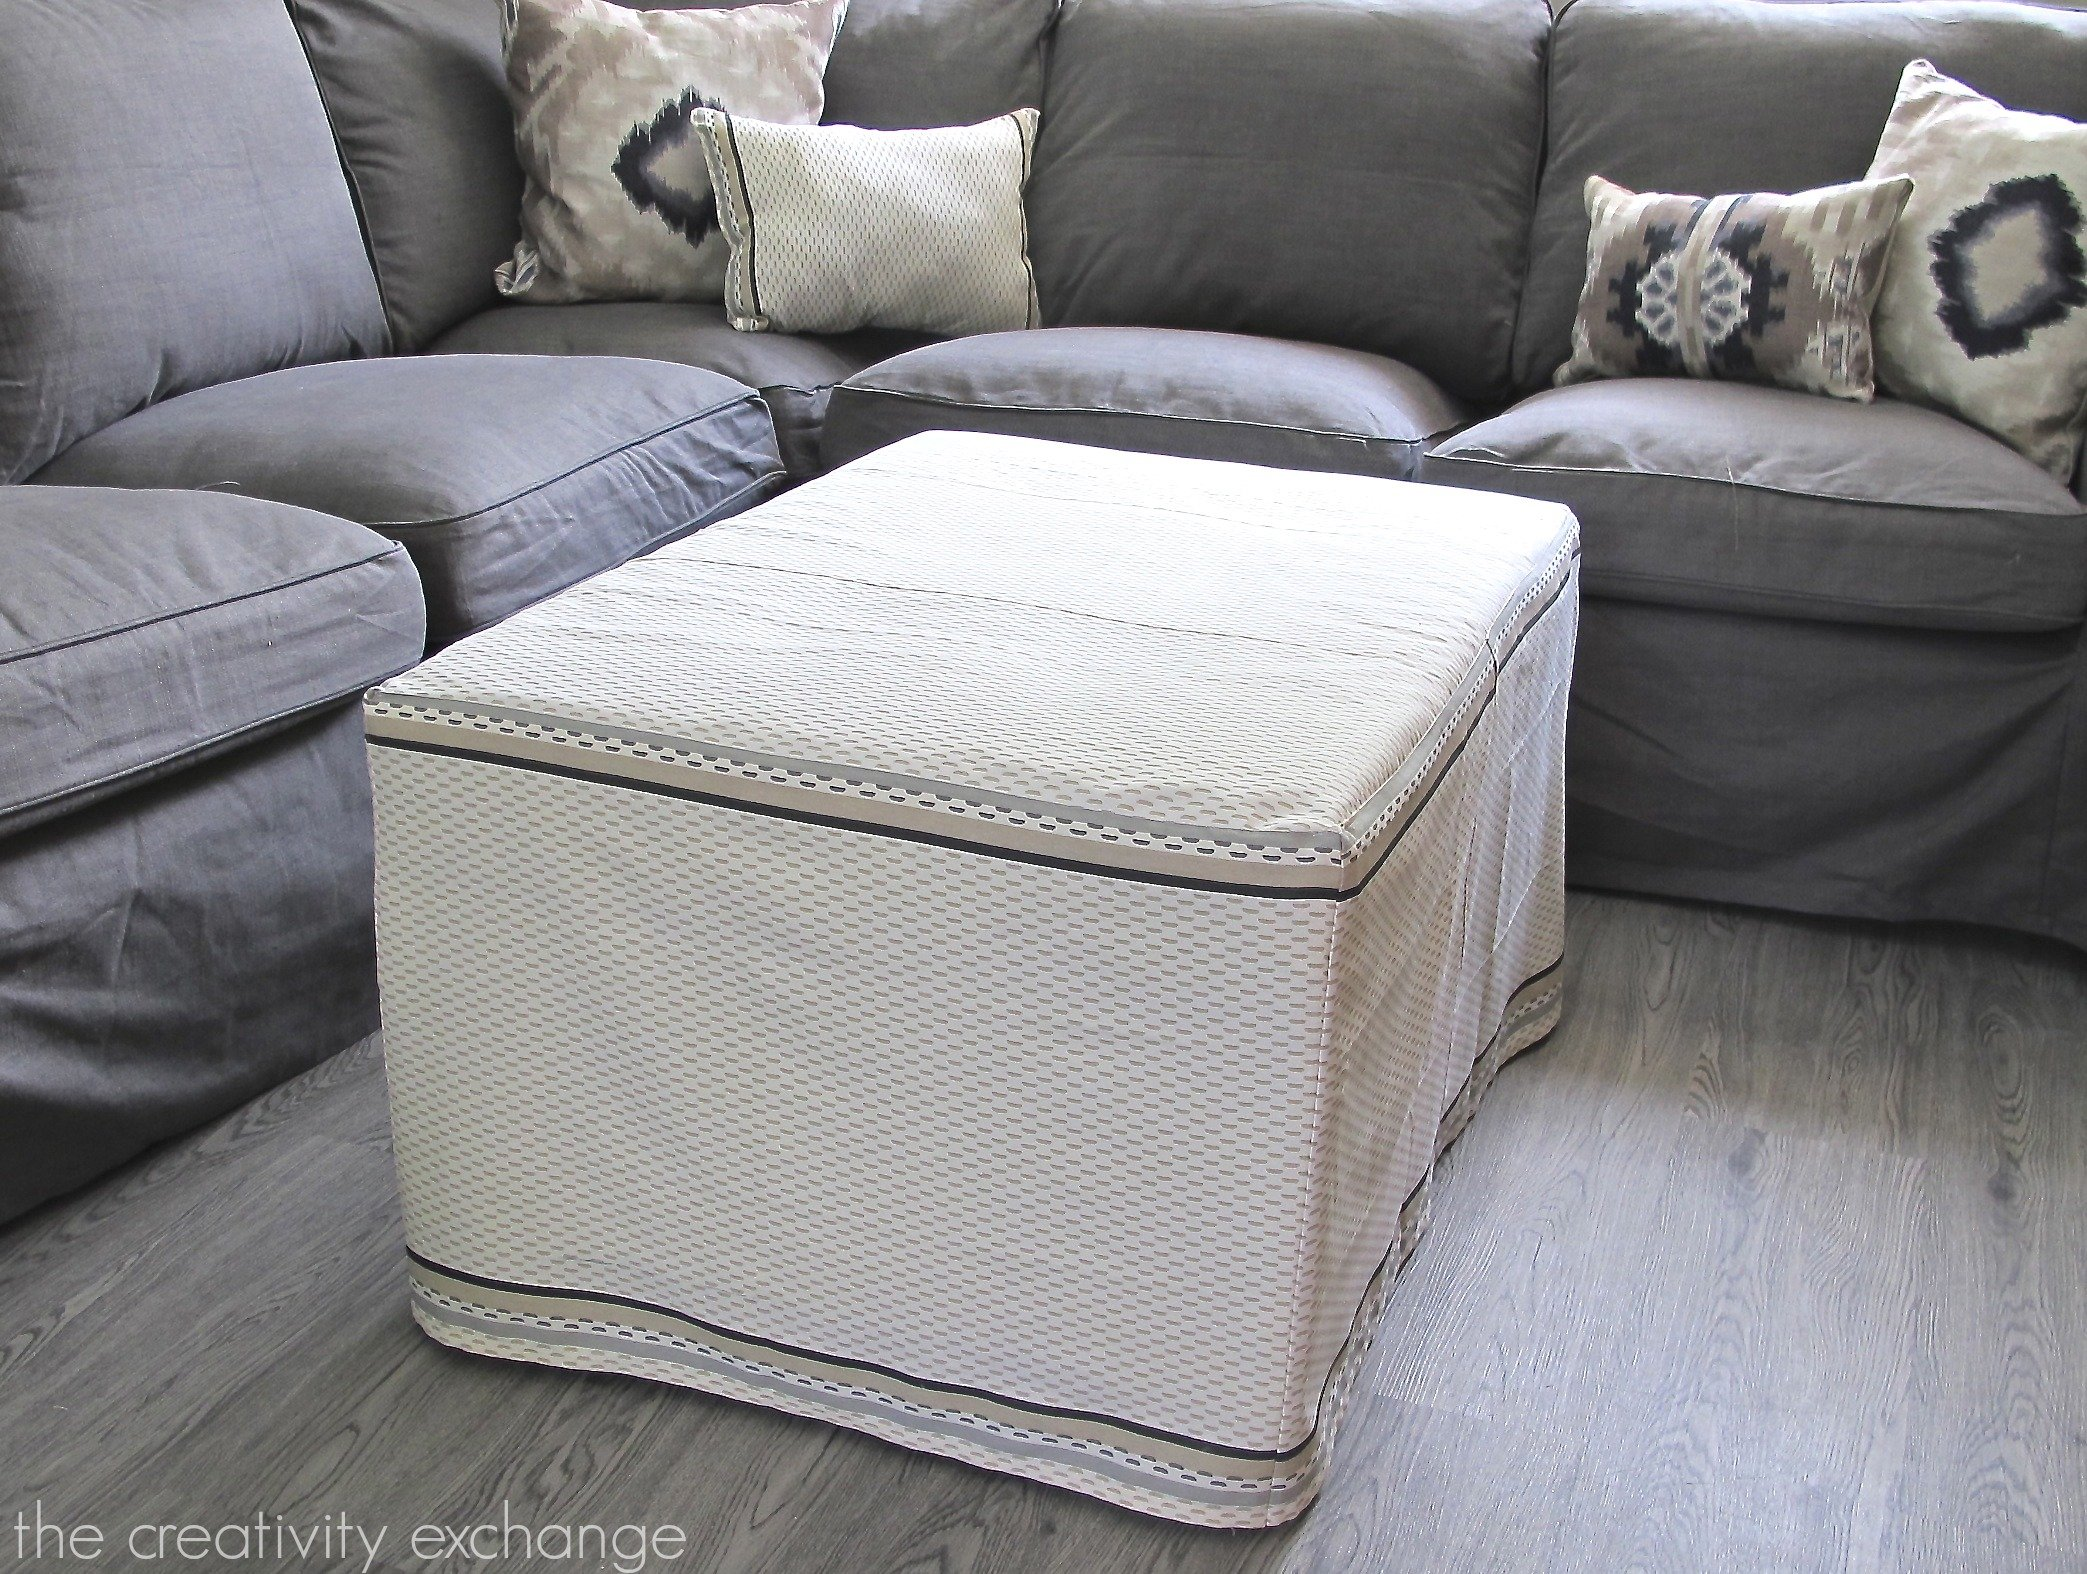 My Dish Towel Ottoman Slipcover? (Office/Craft Room Update